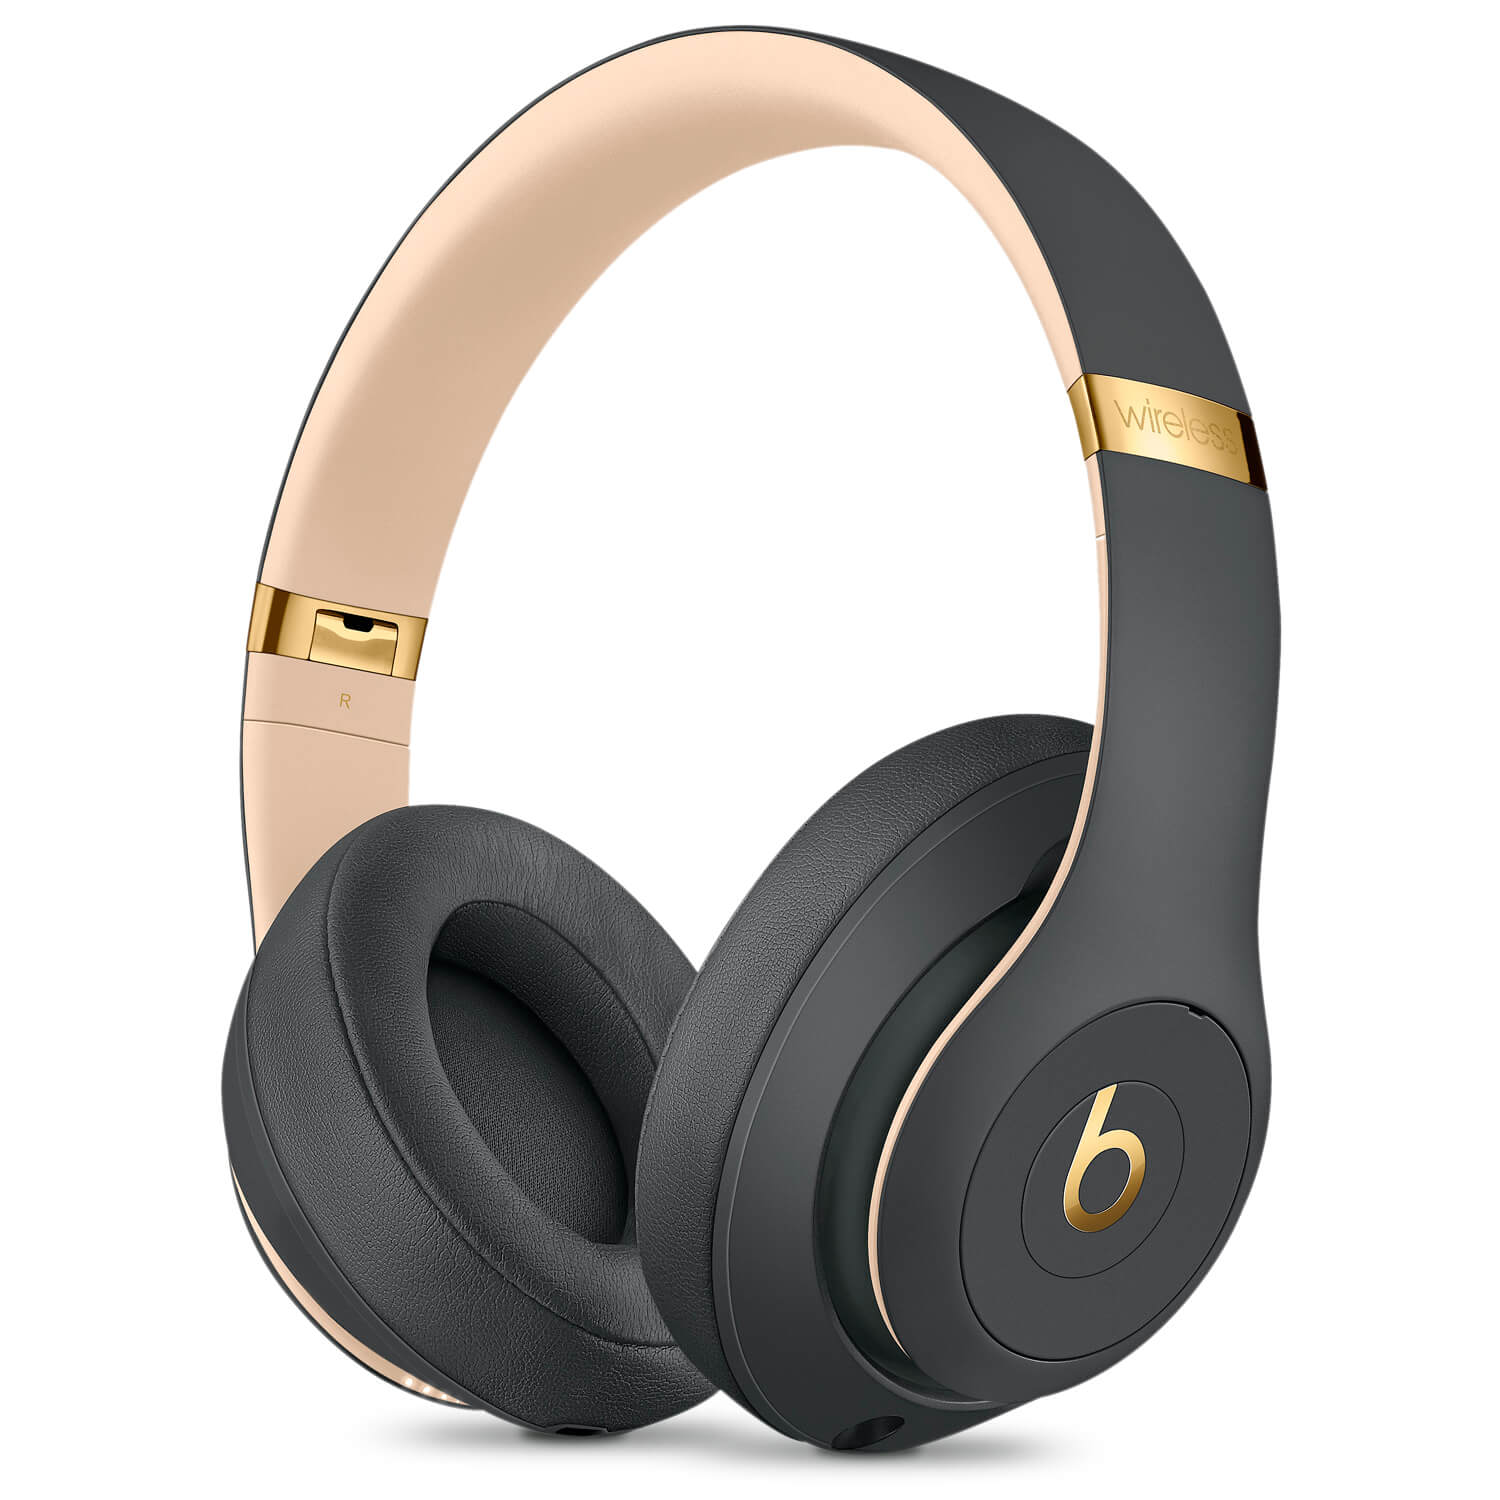 Bluetooth headphones pink gold - sony bluetooth headphones rose gold